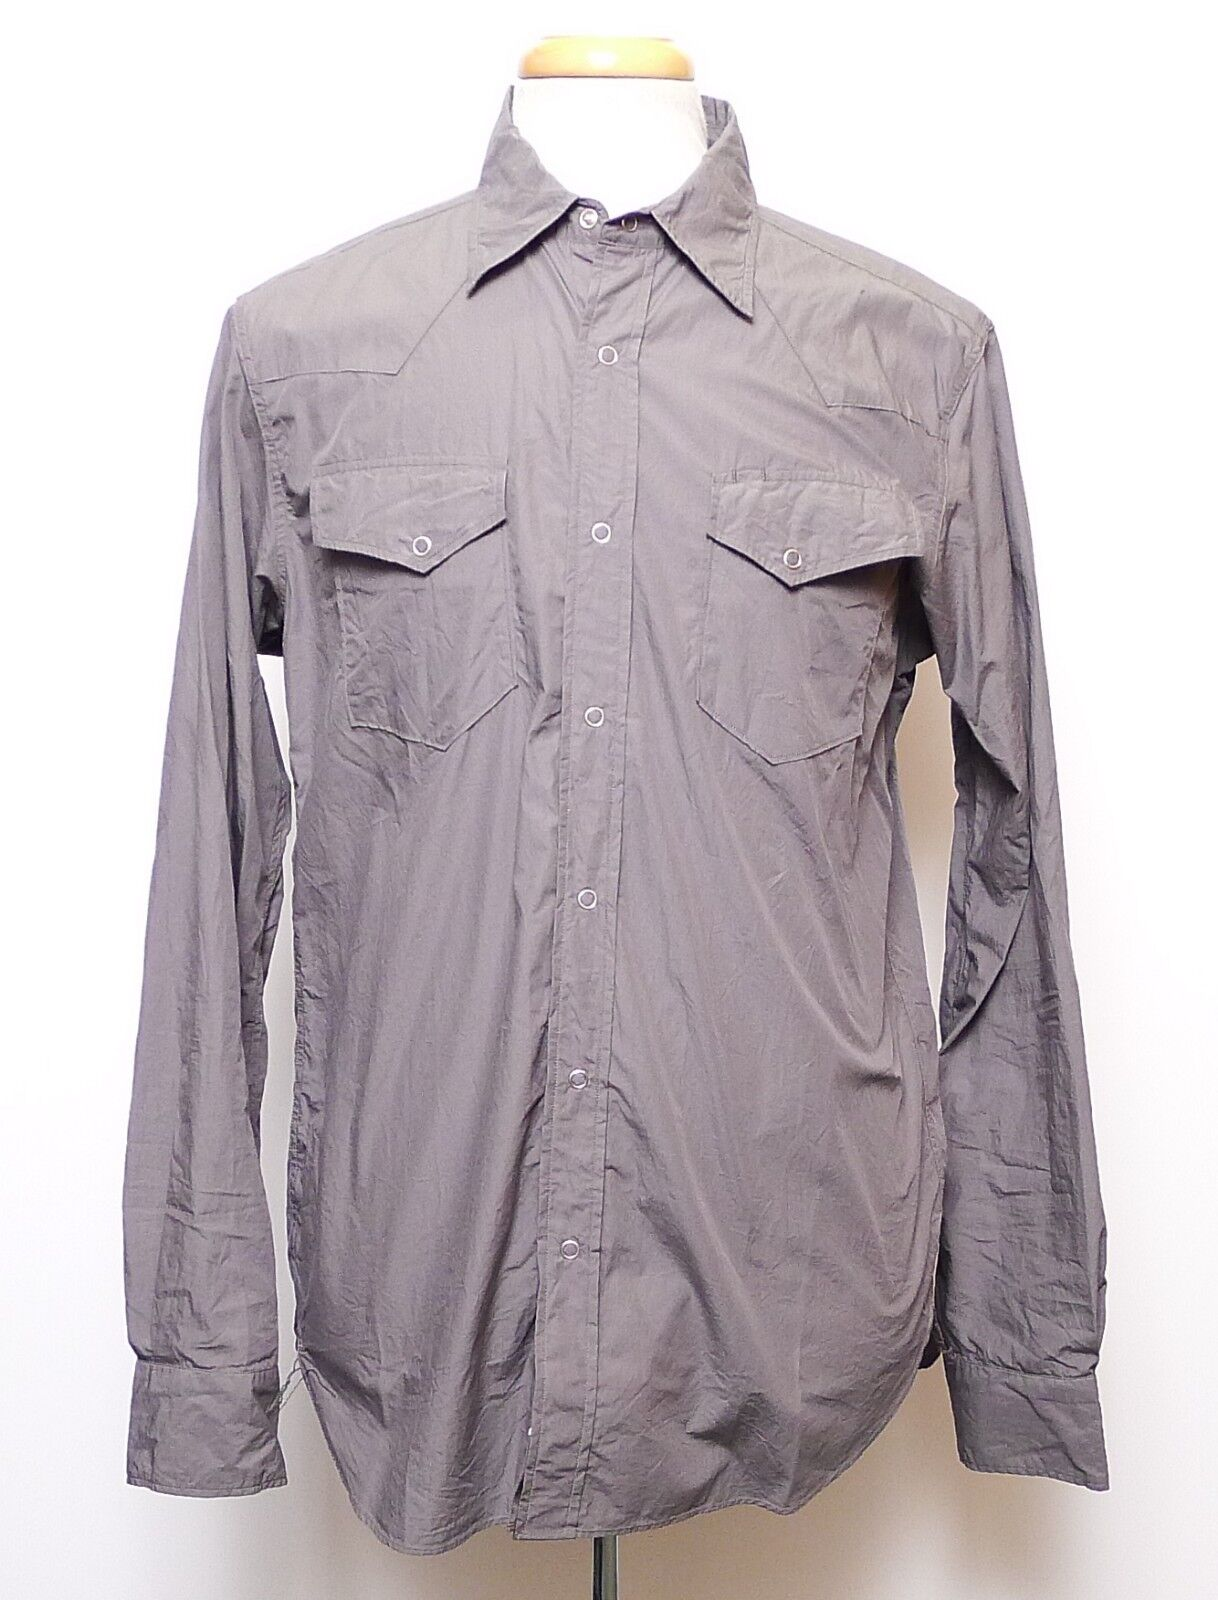 Shuttle Notes Master Cloth Alternative Grey Shirt  Retail  (Various Sizes)